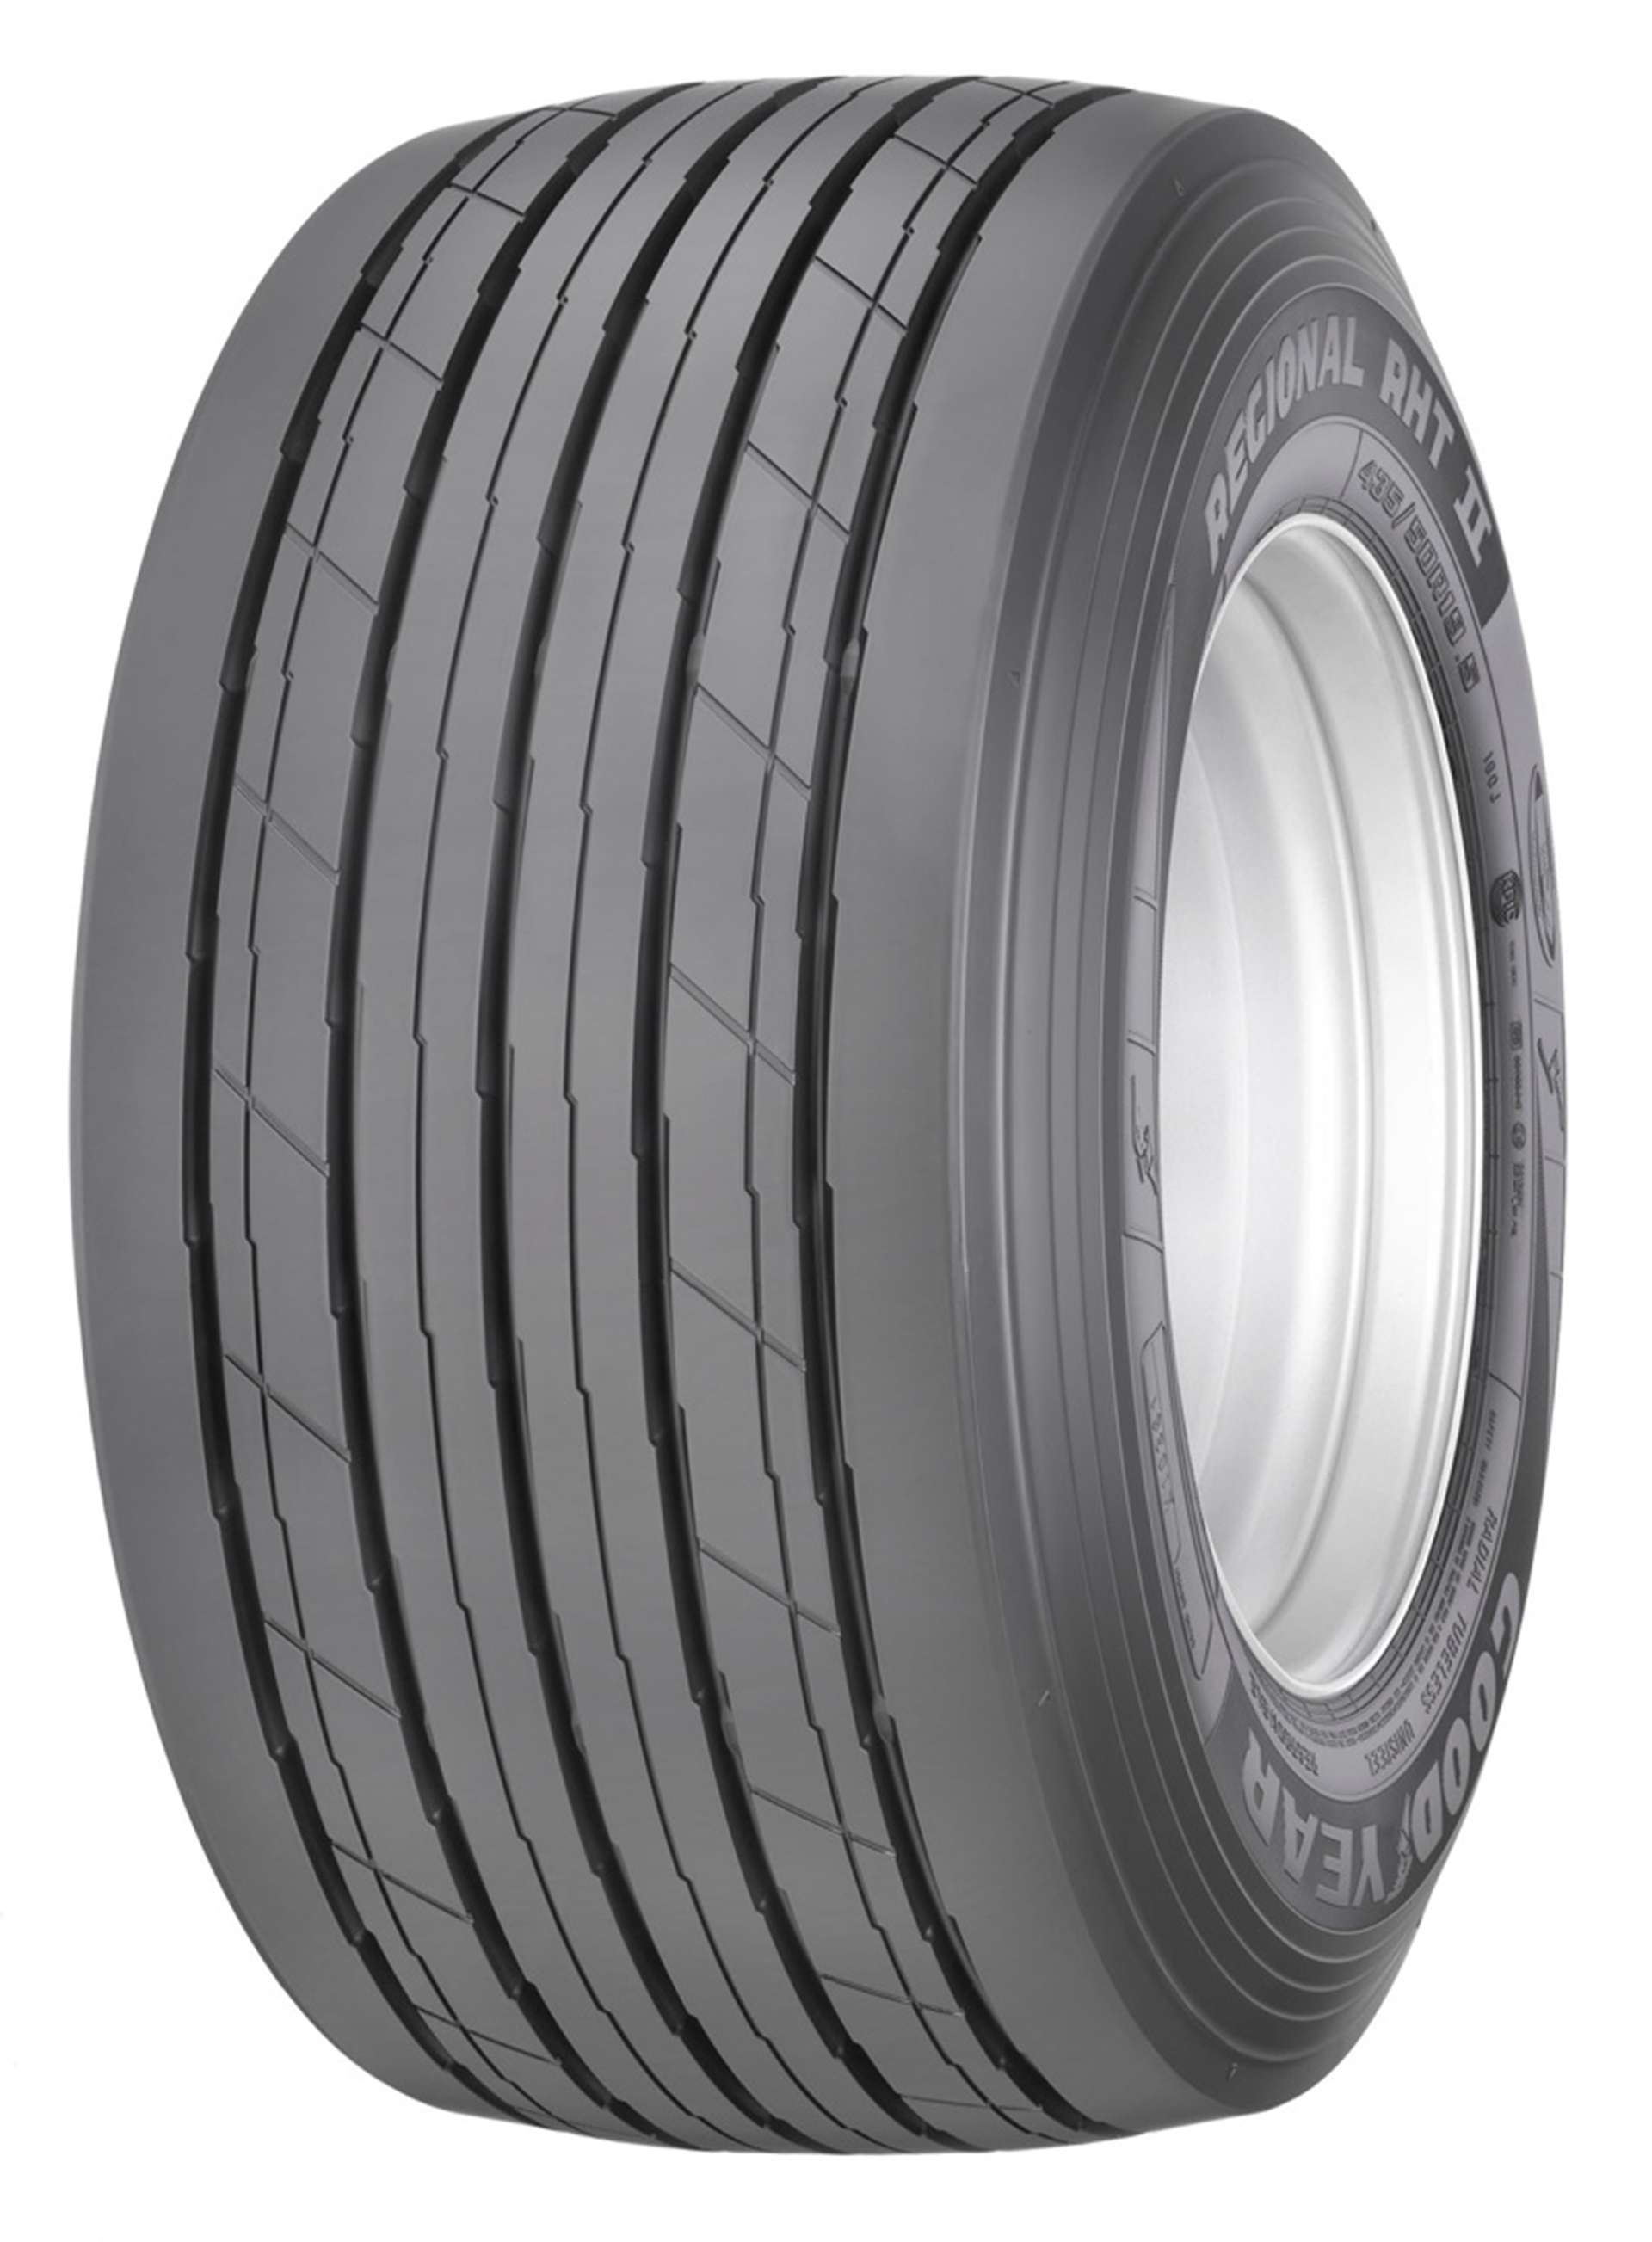 Goodyear tyres 2012